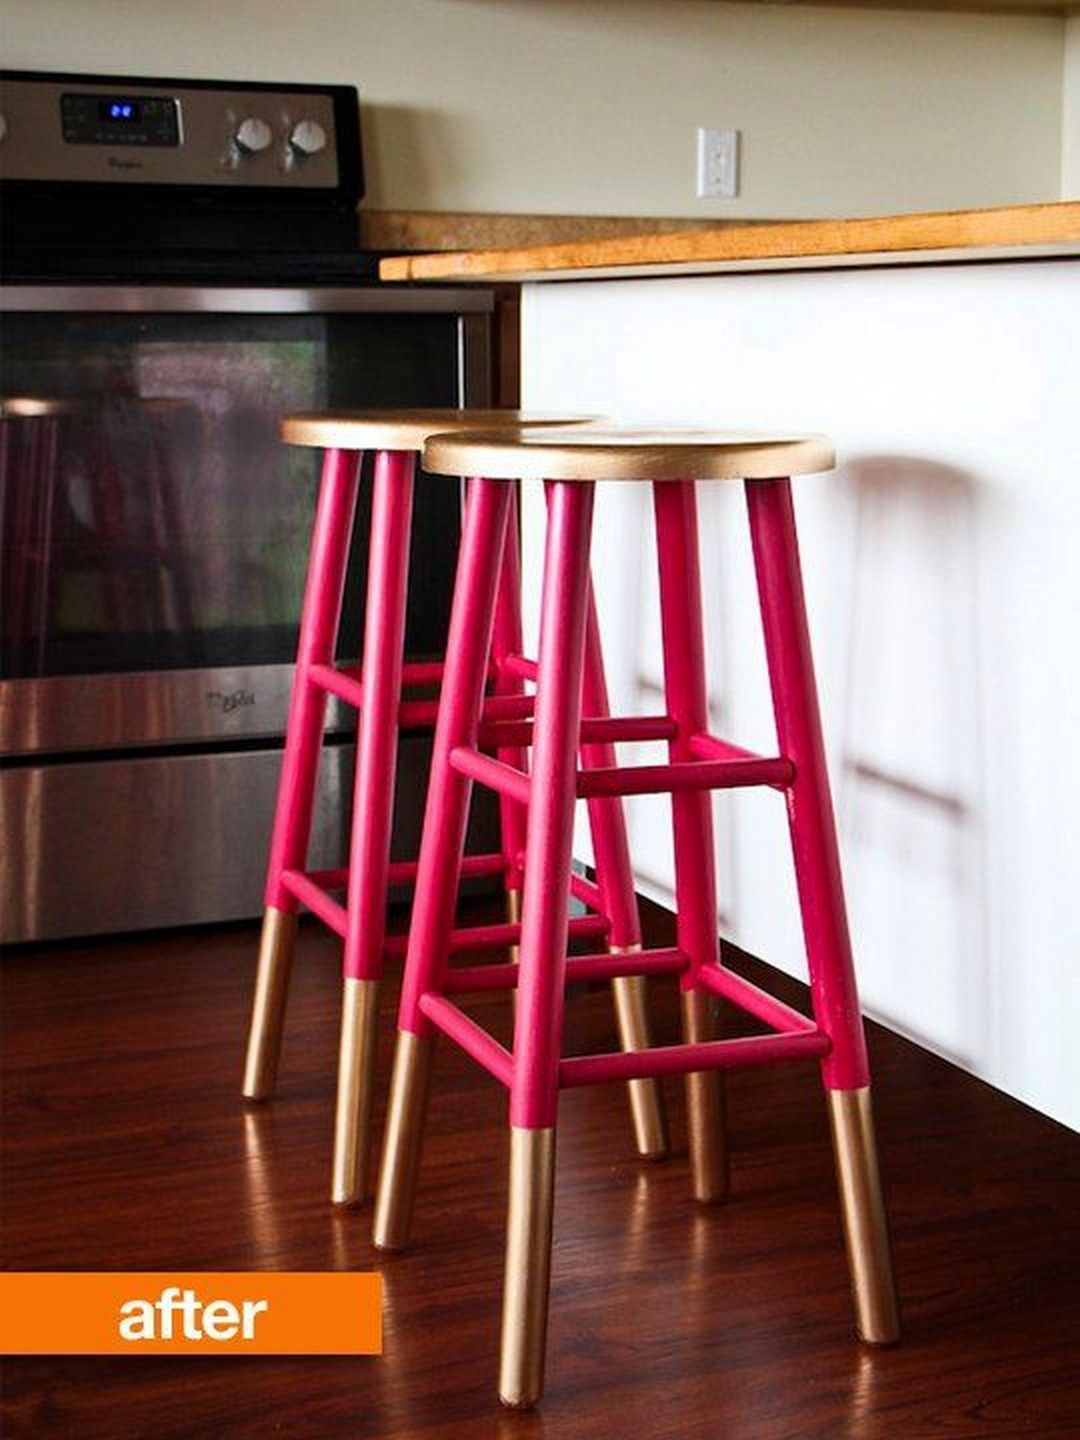 81 Cool Painted Stool Inspirations | Furniture Design Ideas ... Upcycled Kitchen Ideas Html on cake kitchen ideas, fall kitchen ideas, garden kitchen ideas, do it yourself kitchen ideas, recycled kitchen ideas, silver kitchen ideas, photography kitchen ideas, thanksgiving kitchen ideas, furniture kitchen ideas, plants kitchen ideas, glass kitchen ideas, 2015 kitchen ideas, vintage small kitchen ideas, rustic kitchen ideas, craft kitchen ideas, whimsical kitchen ideas, patriotic kitchen ideas, travel kitchen ideas, country blue kitchen ideas, lowe's kitchen ideas,